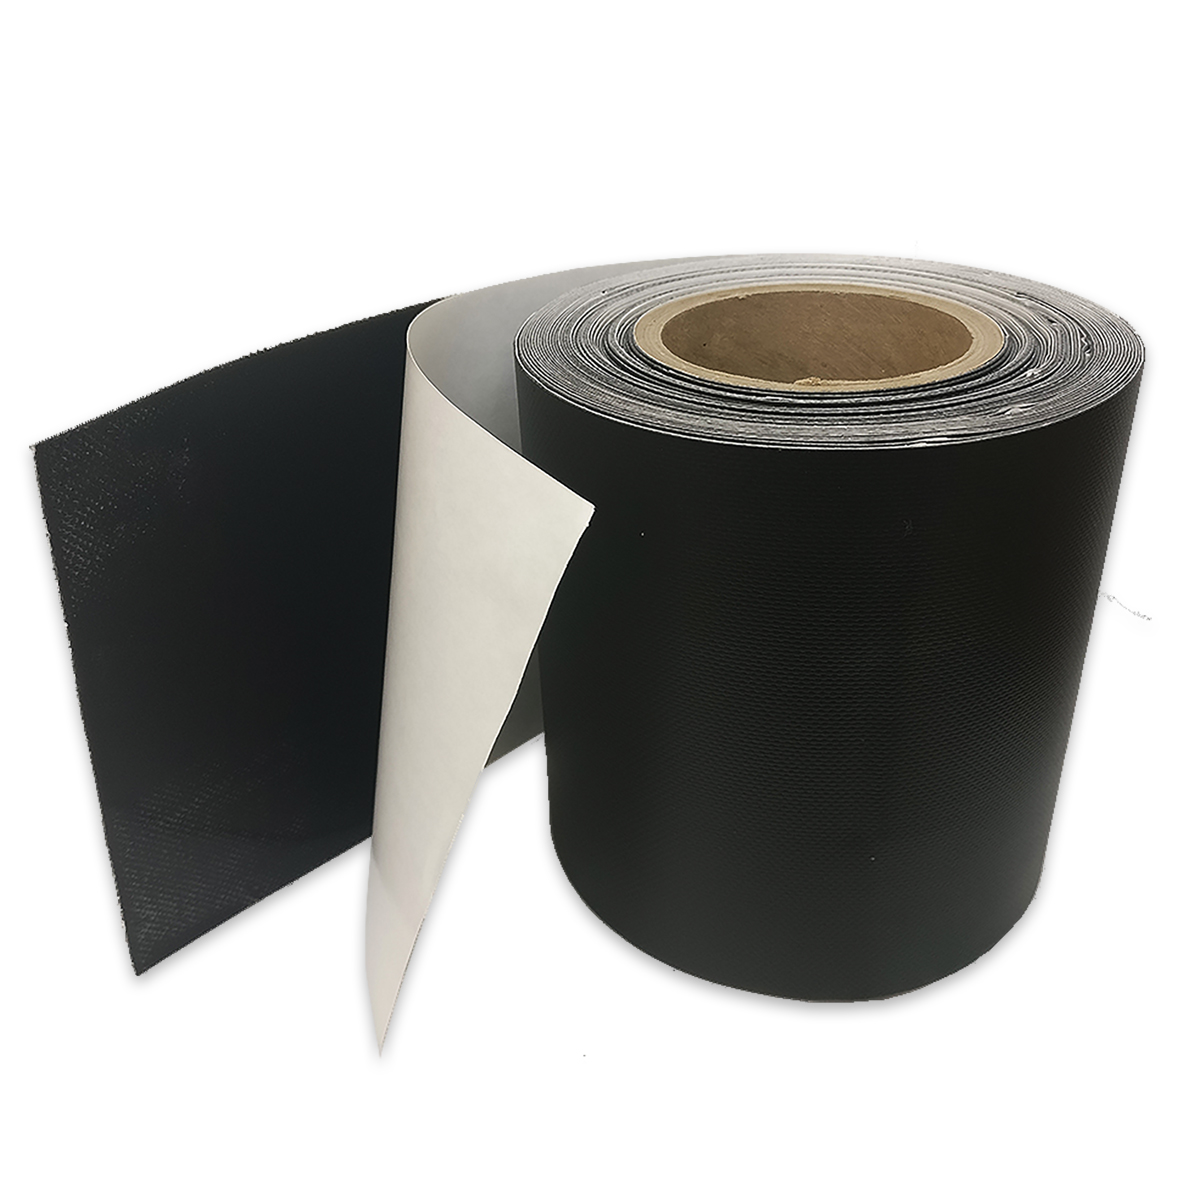 "Tarp Repair Tape (6"" x 50 Roll) - Vinyl Tarp Tape, Black"